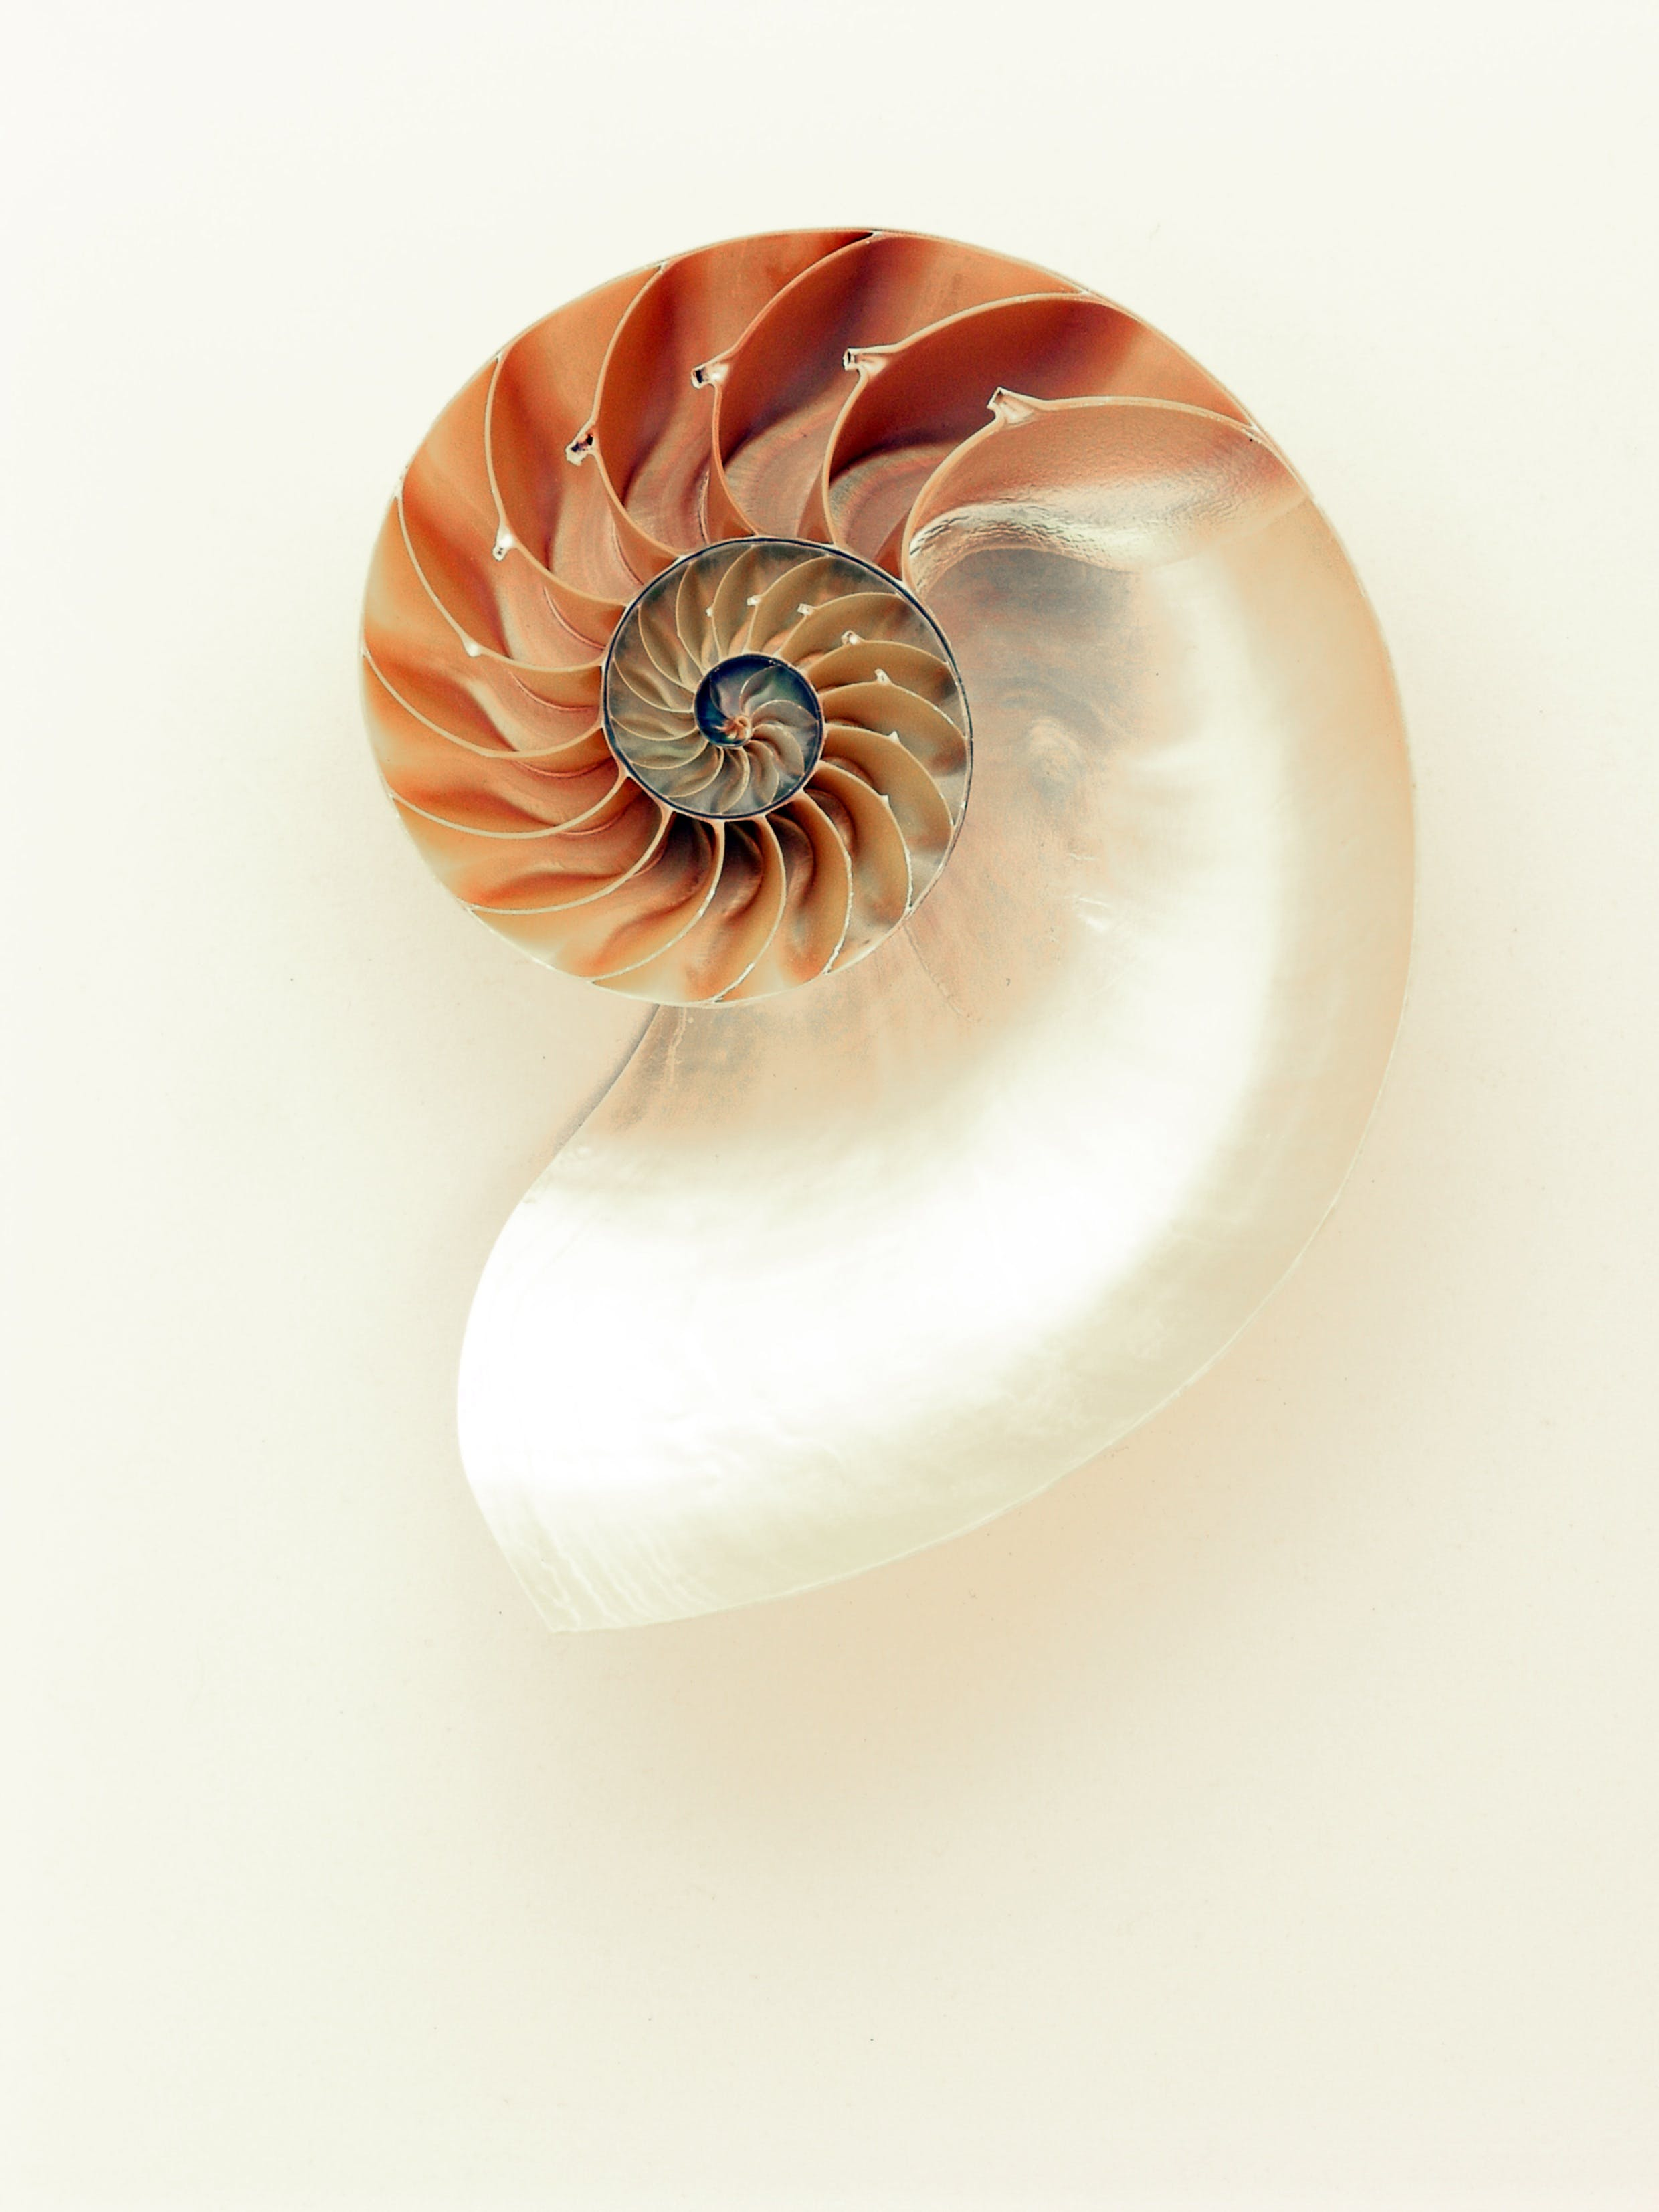 Orange and White Seashell on White Surface